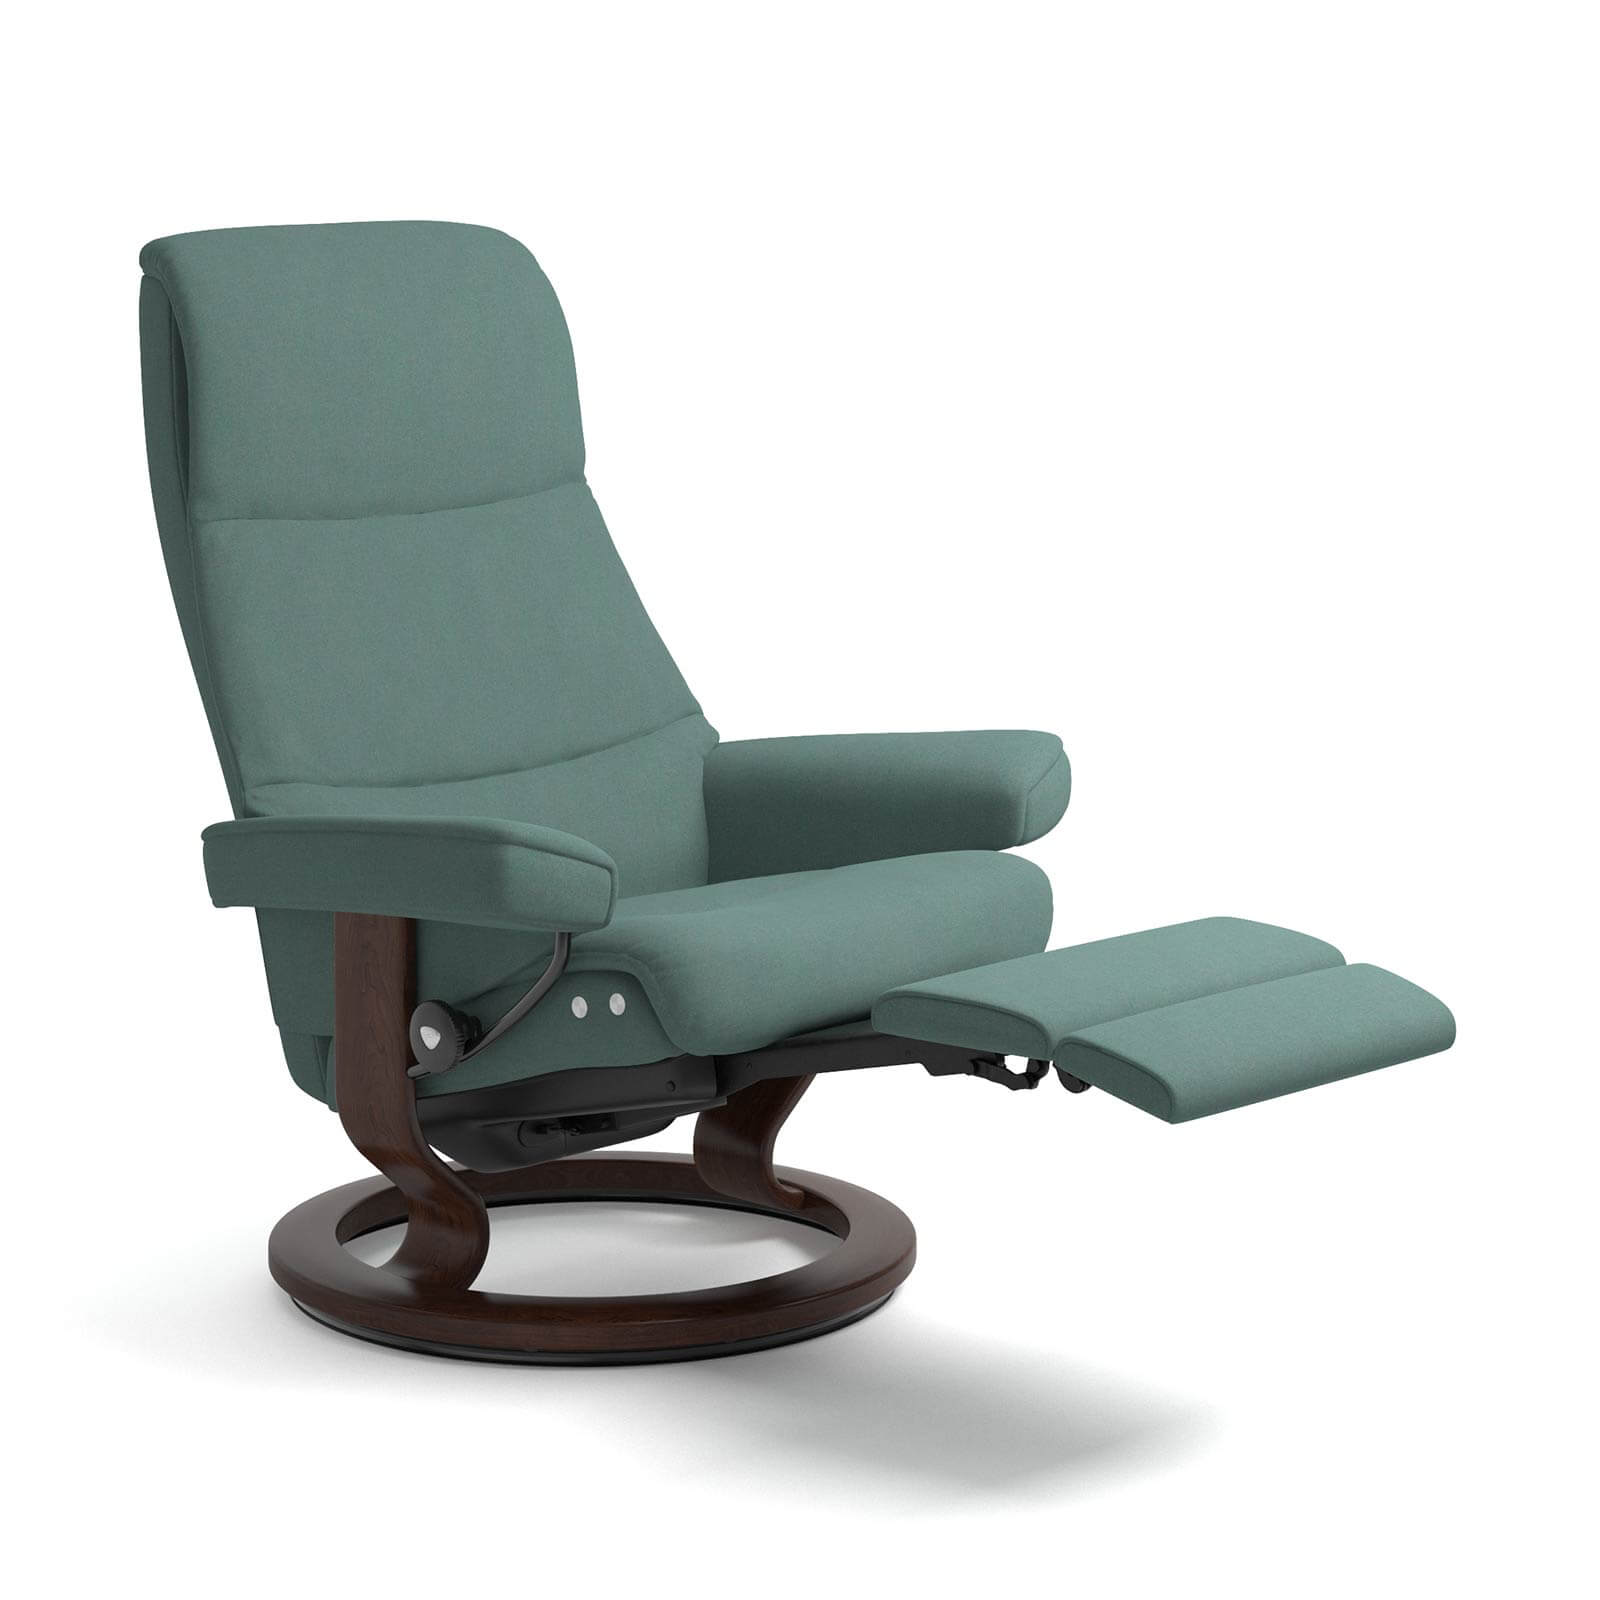 Stressless Sessel View Legcomfort Calido Aqua Stressless